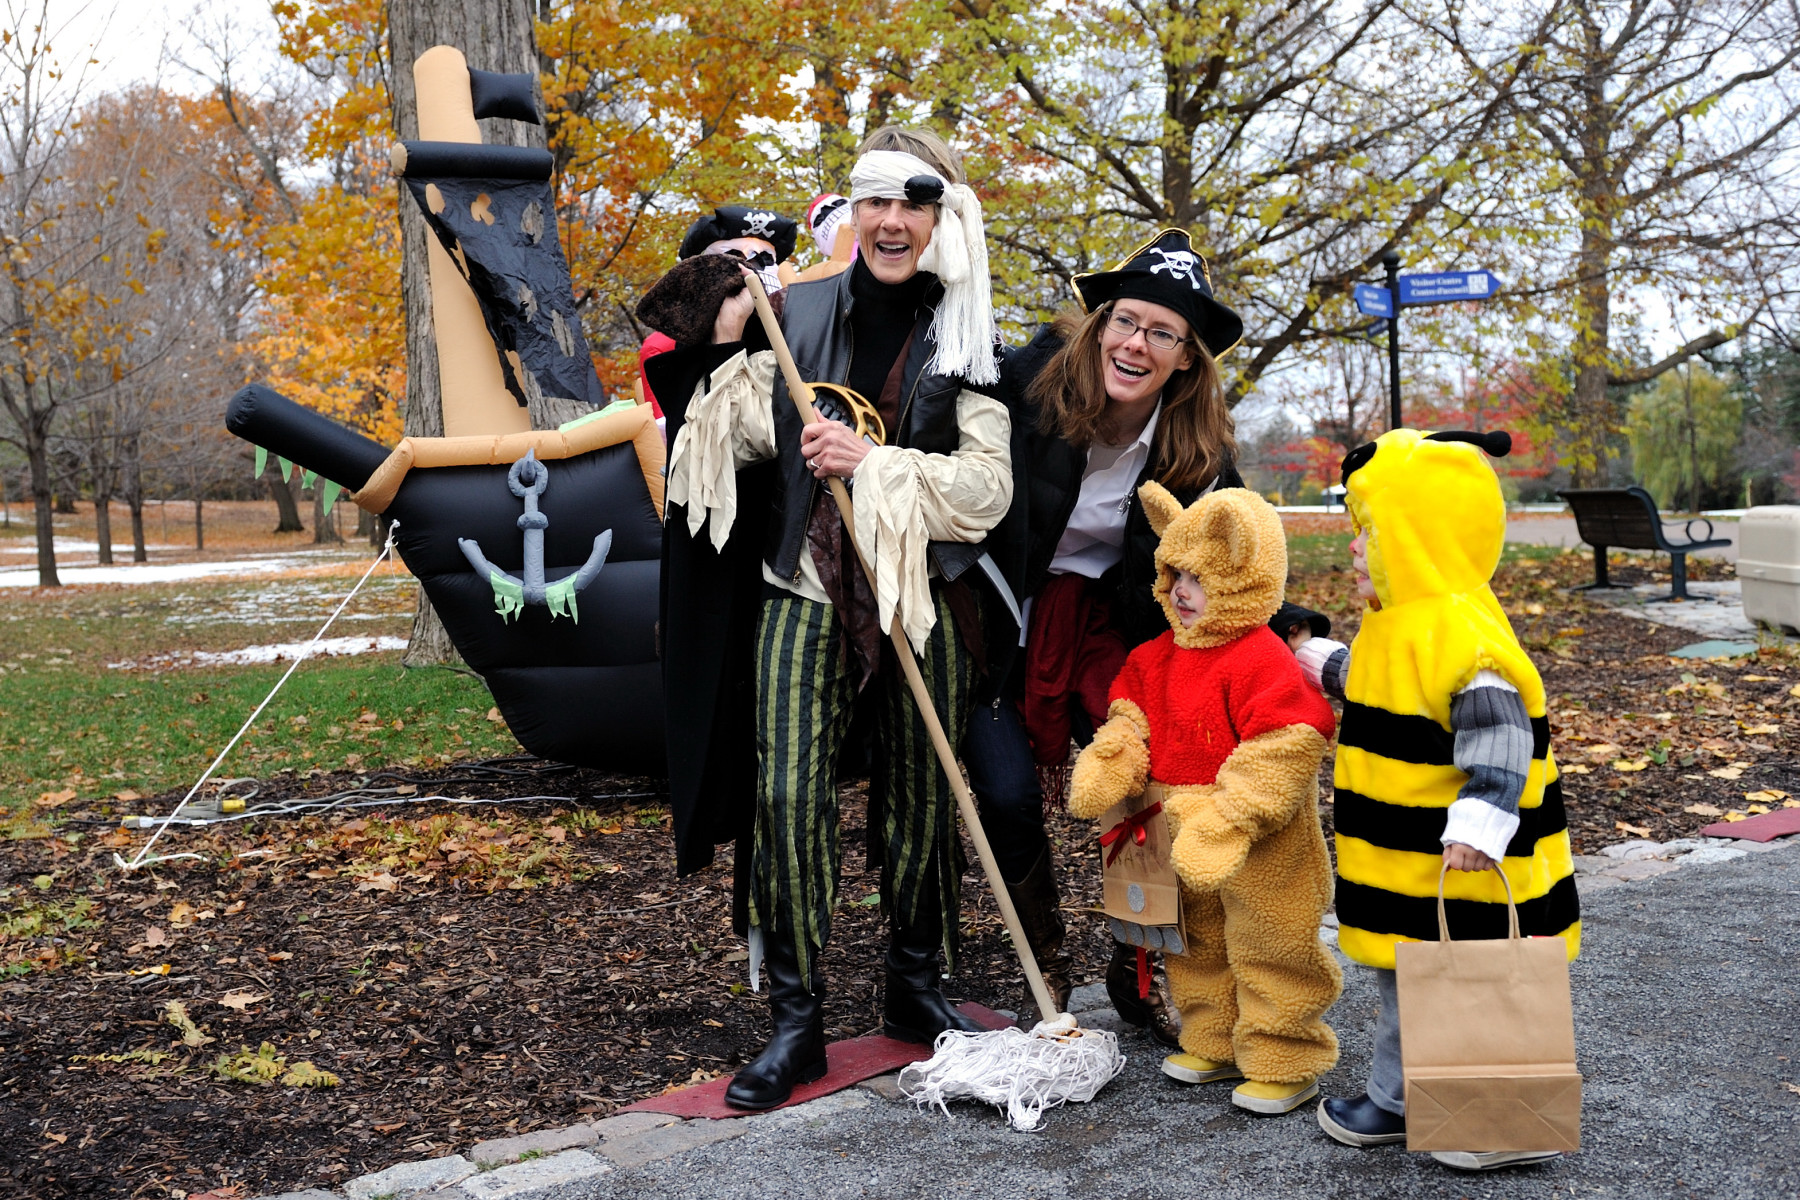 Her Excellency Mrs. Sharon Johnston, along with her daughter and her grand children, greeted trick-or-treaters that dared to venture on the Rideau Hall grounds.